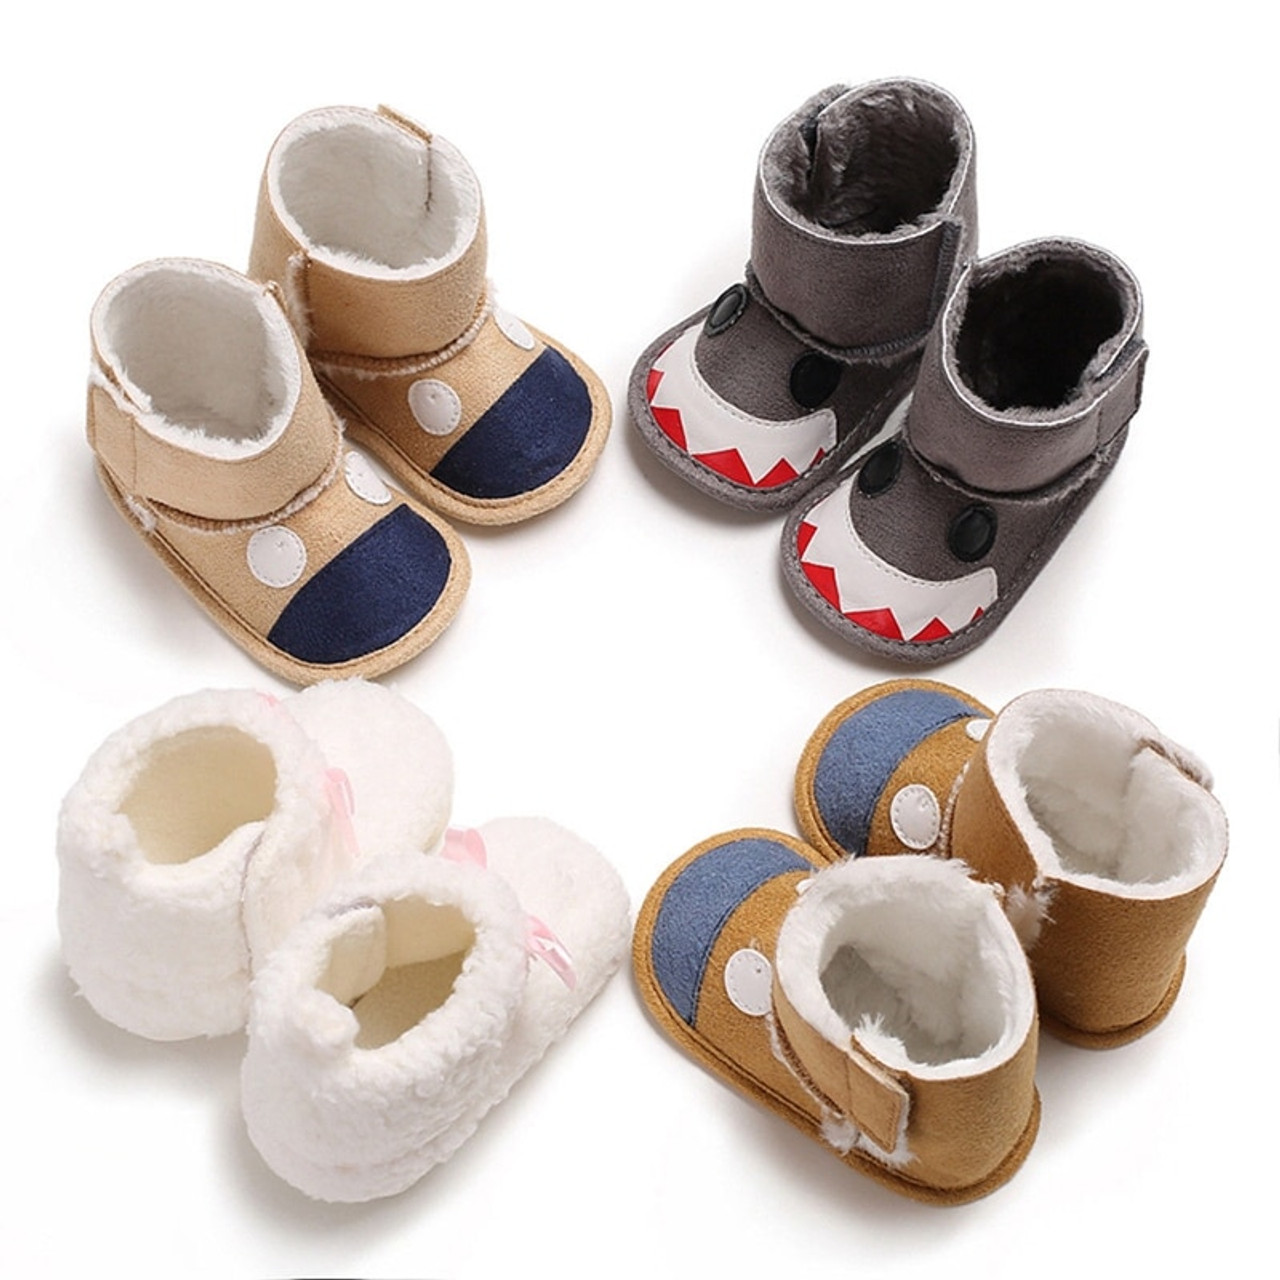 Christmas Shoes For Girls.Kids Baby Boys And Girls Xmas Christmas Boots Winter Warm Indoor Slip On Shoes Casual Cute